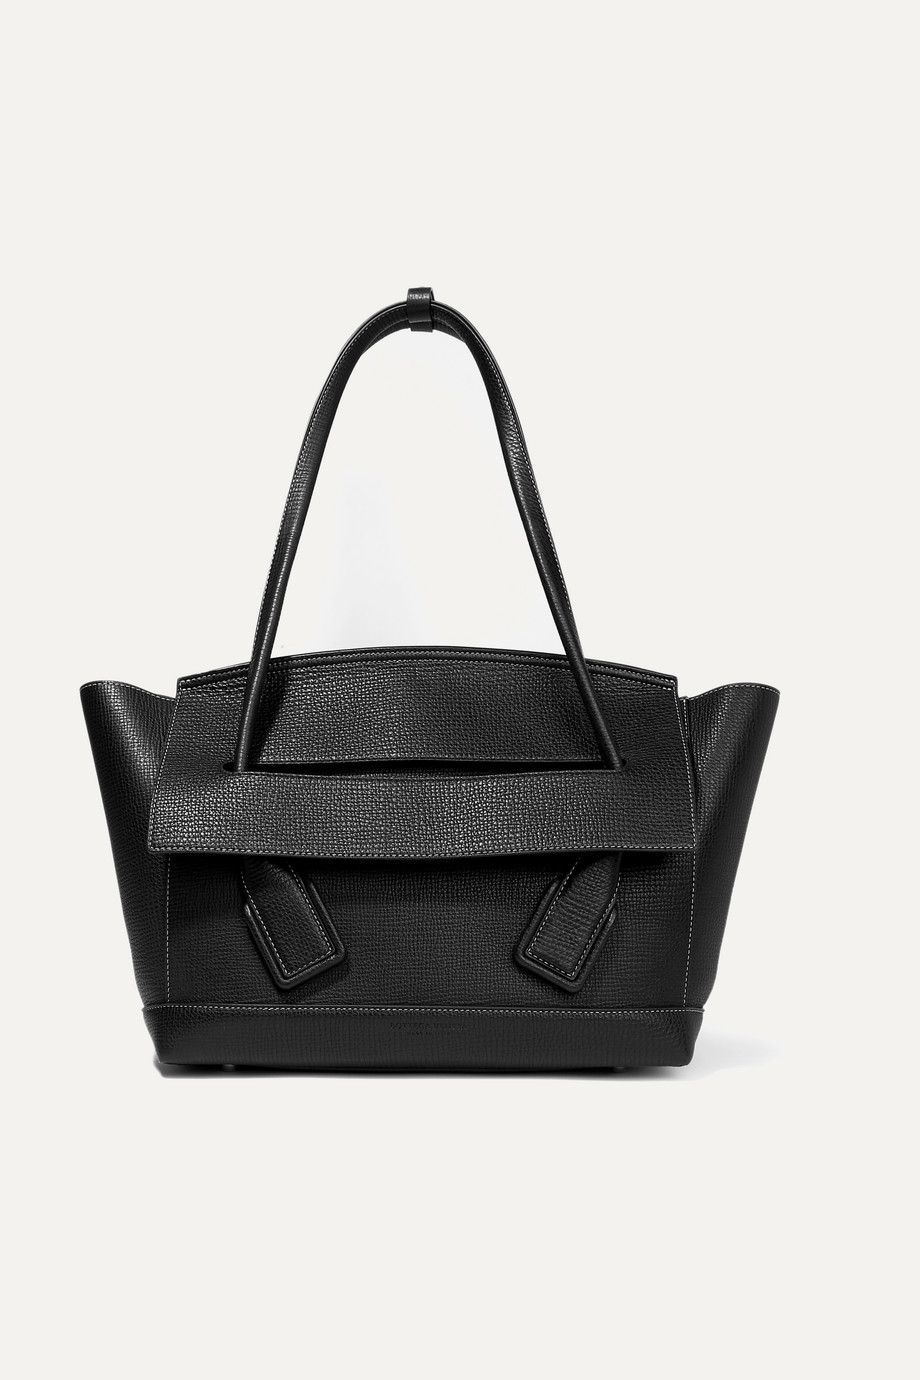 Bottega Veneta Arco medium textured-leather tote